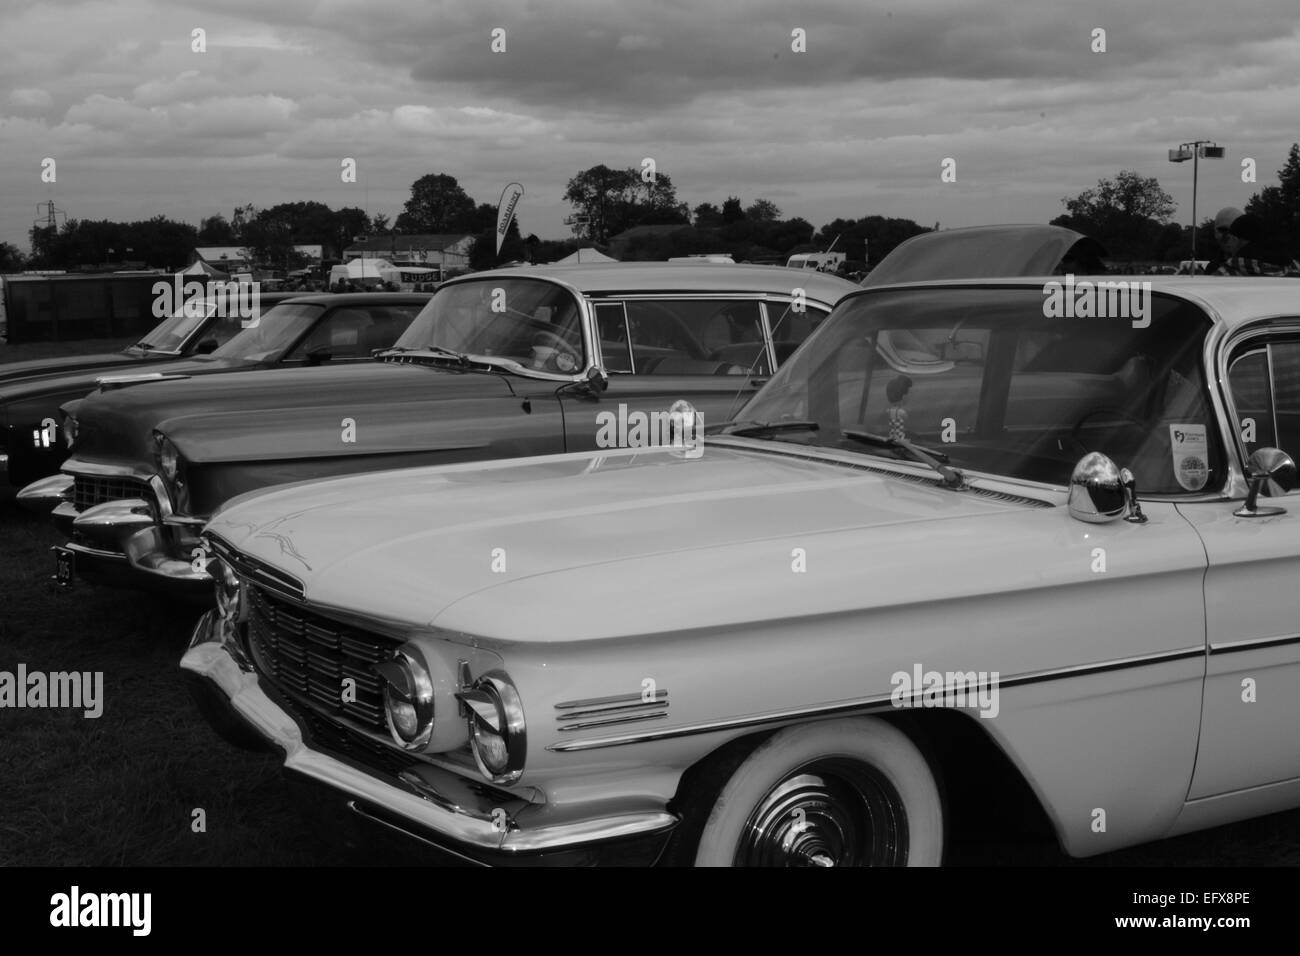 old cars, 4,black and white, vehicles, interesting, car parts ...